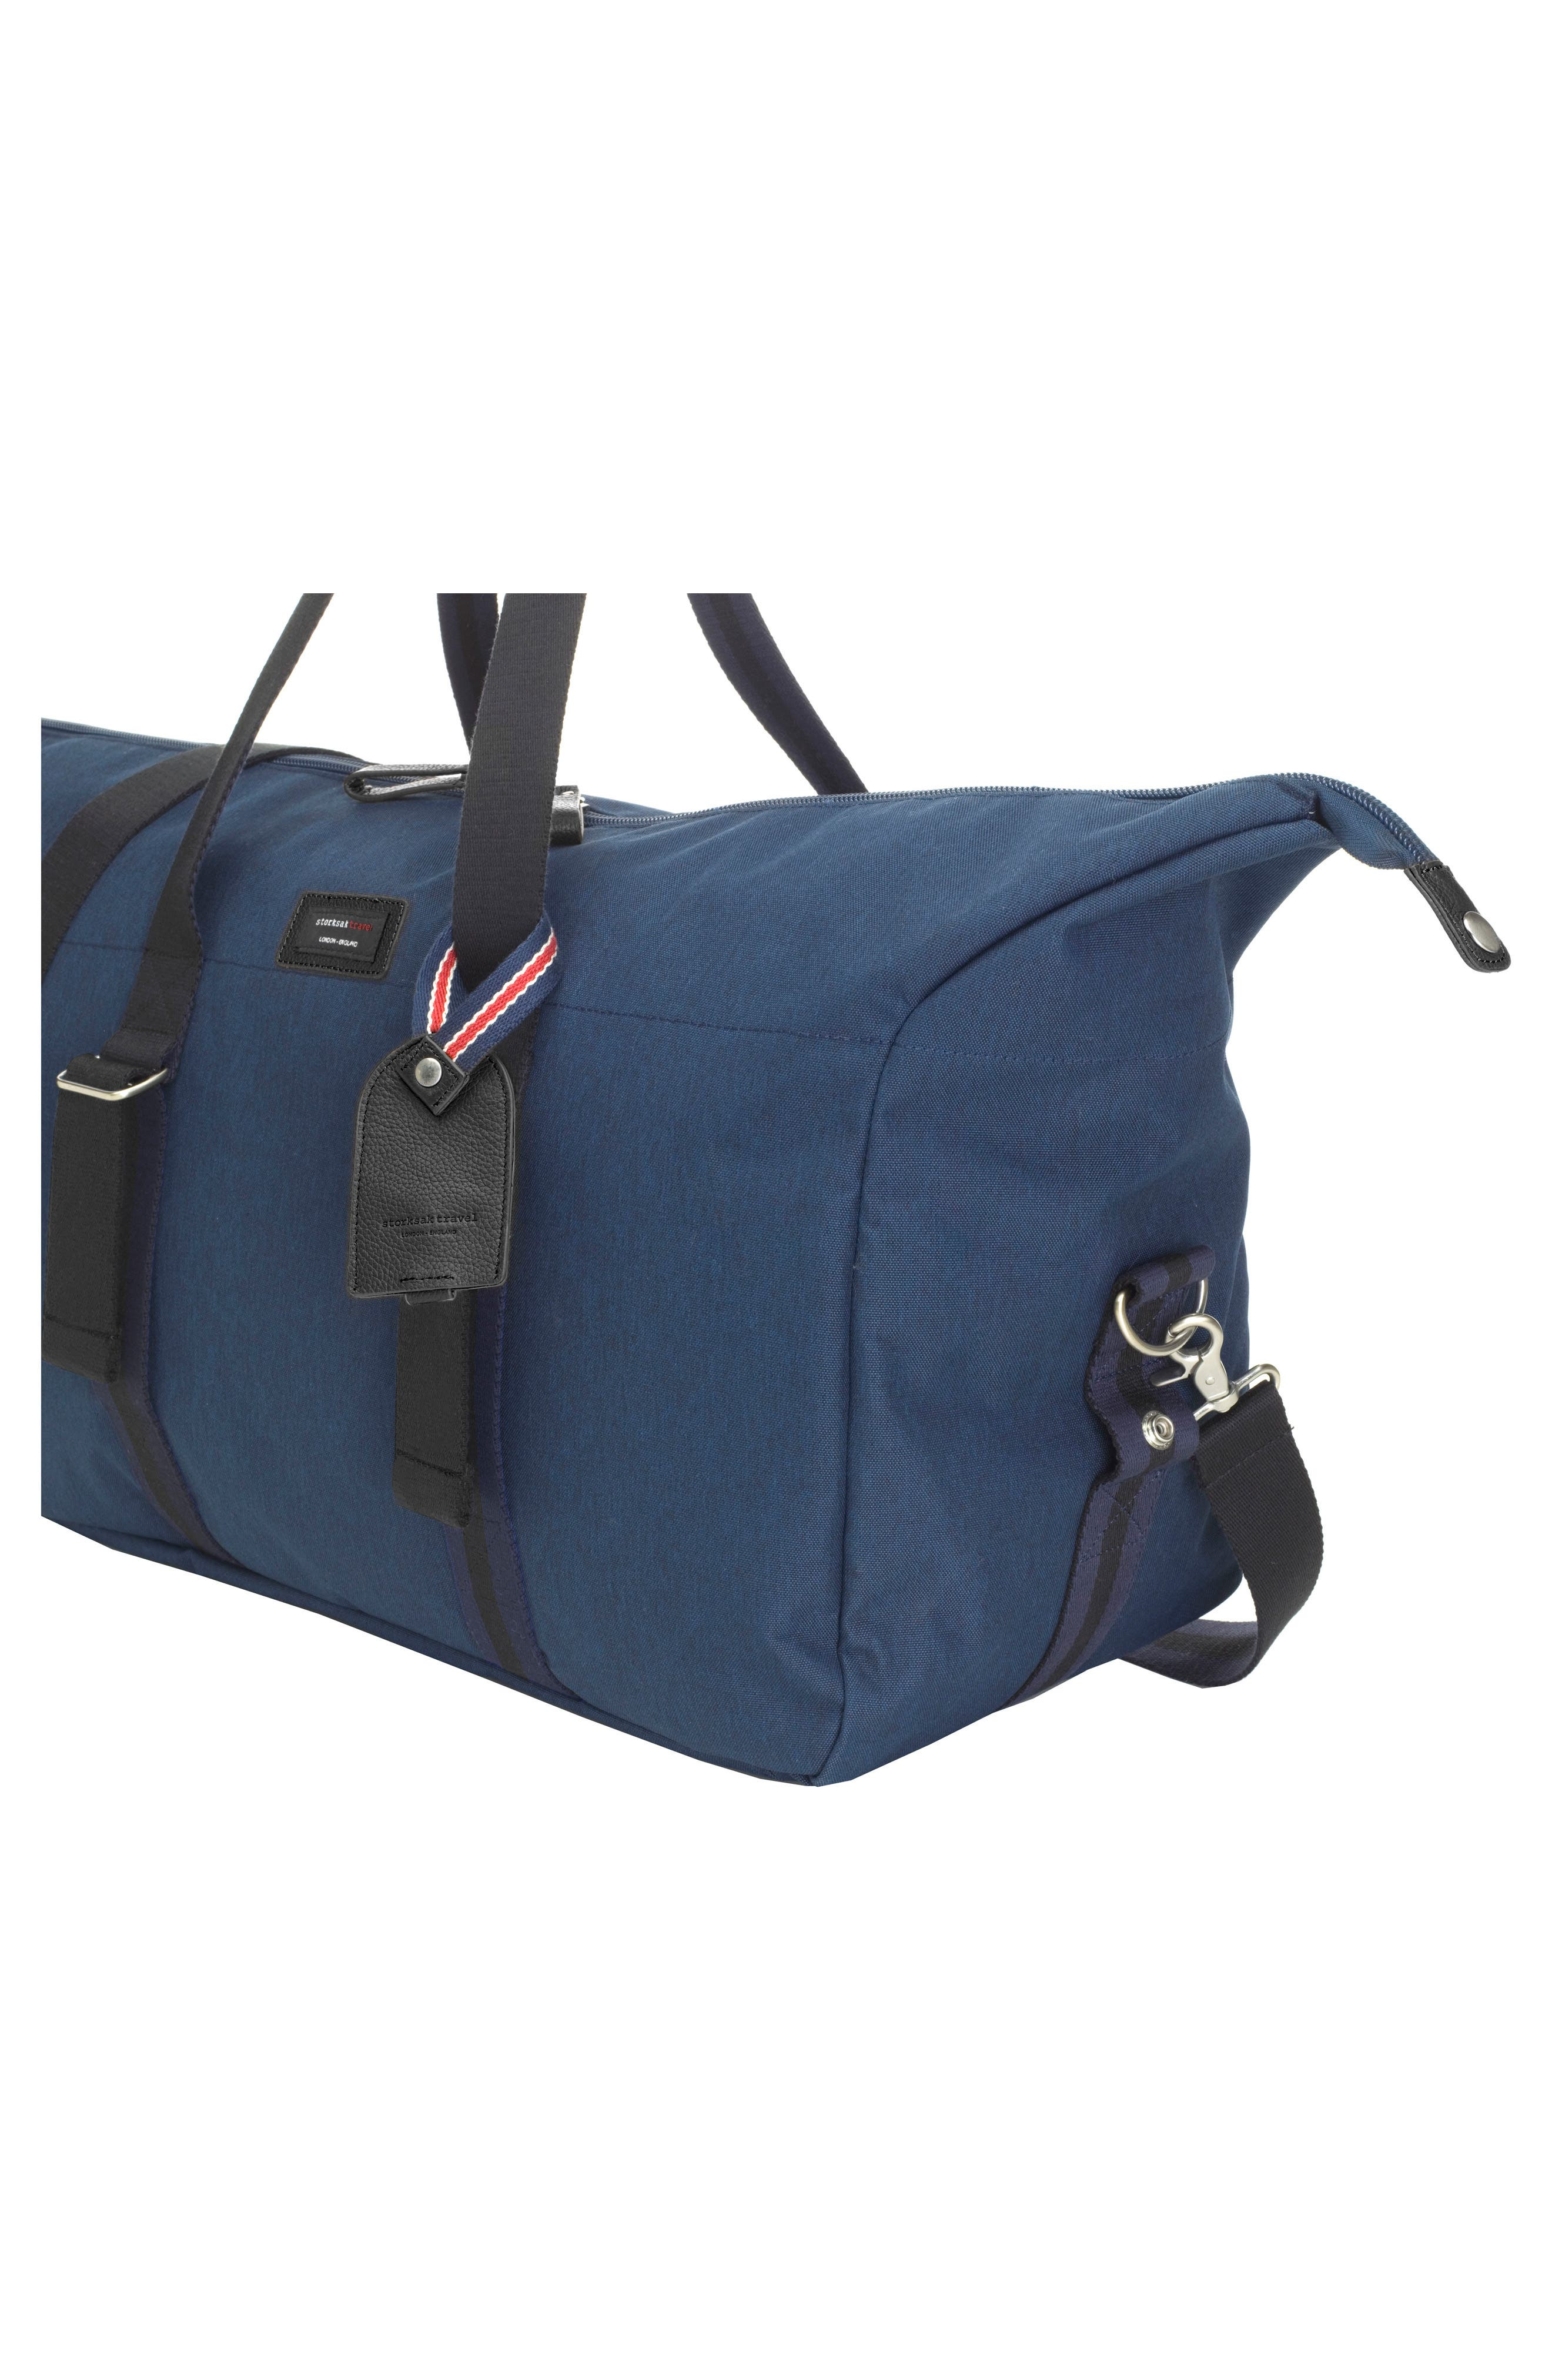 Cabin Wheeled Carry-On with Hanging Organizer,                             Alternate thumbnail 6, color,                             Navy